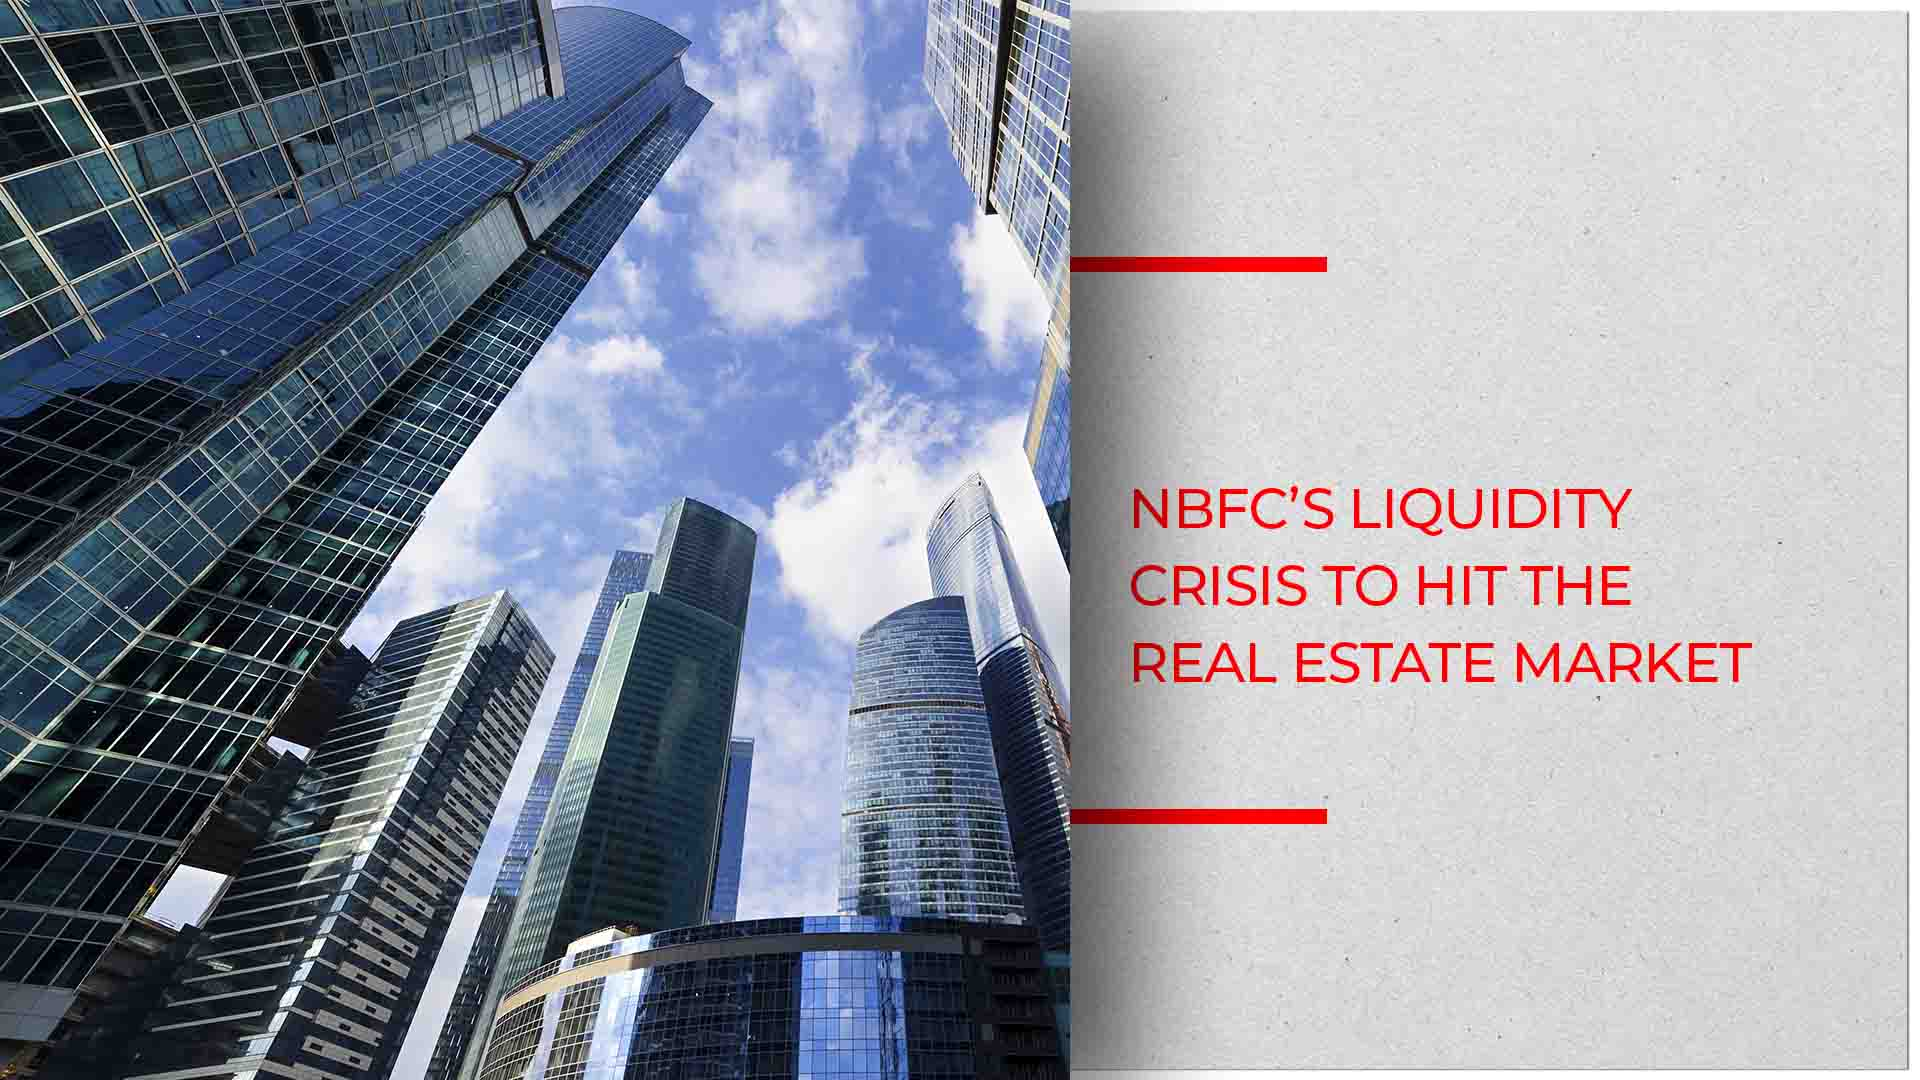 Experts: NBFC Liquidity Crisis To Impact Indian Real Estate Industry